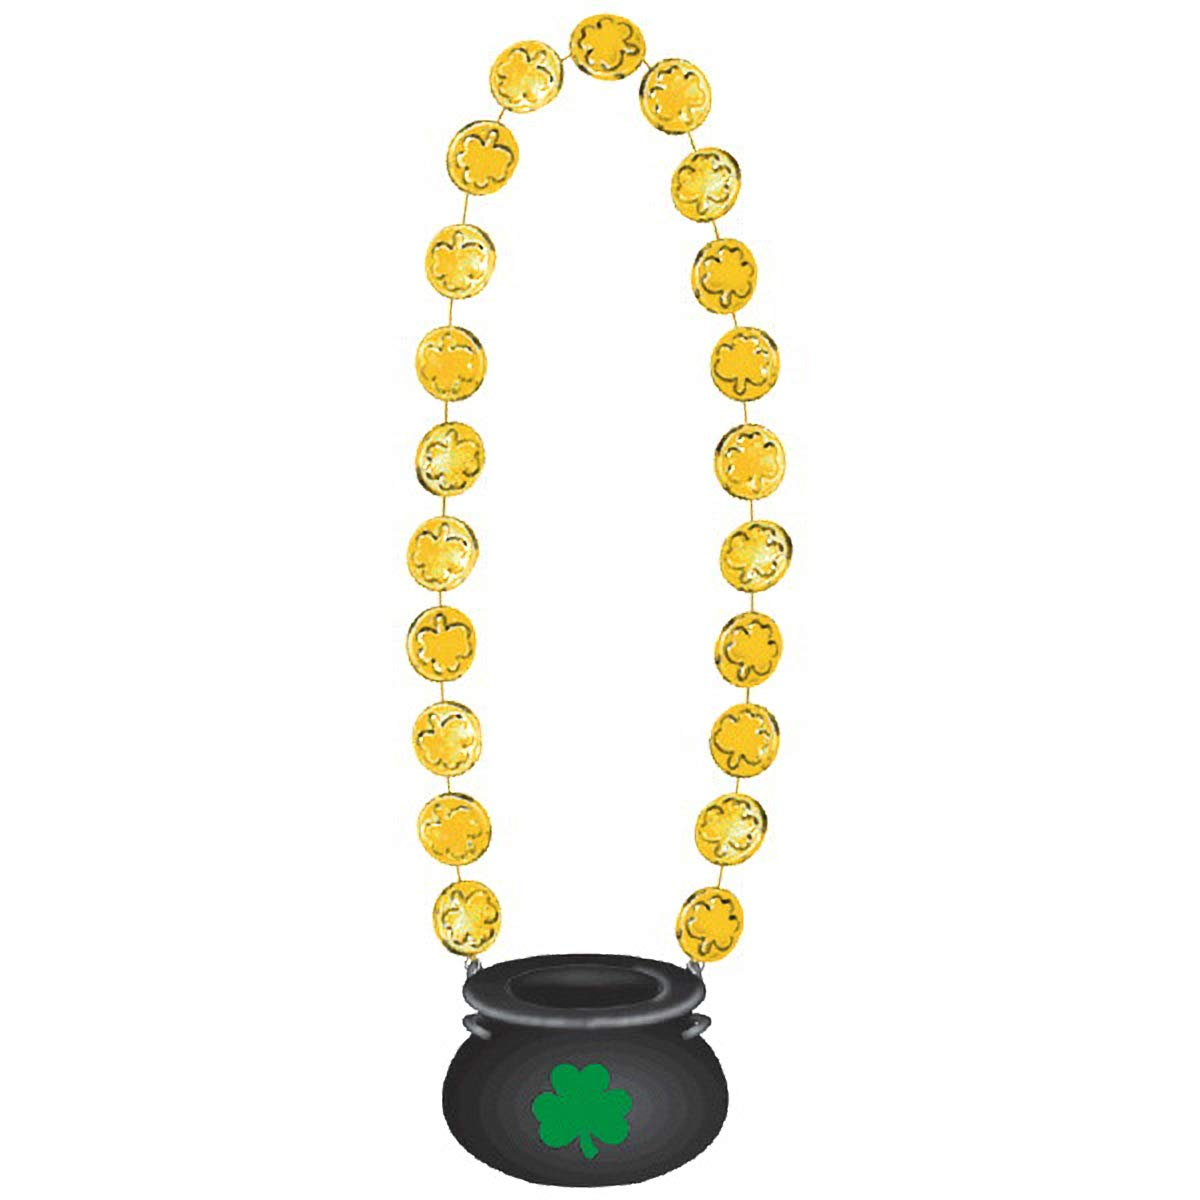 36 I 9 Ct Amscan St Patricks Day Gold Coin Necklace